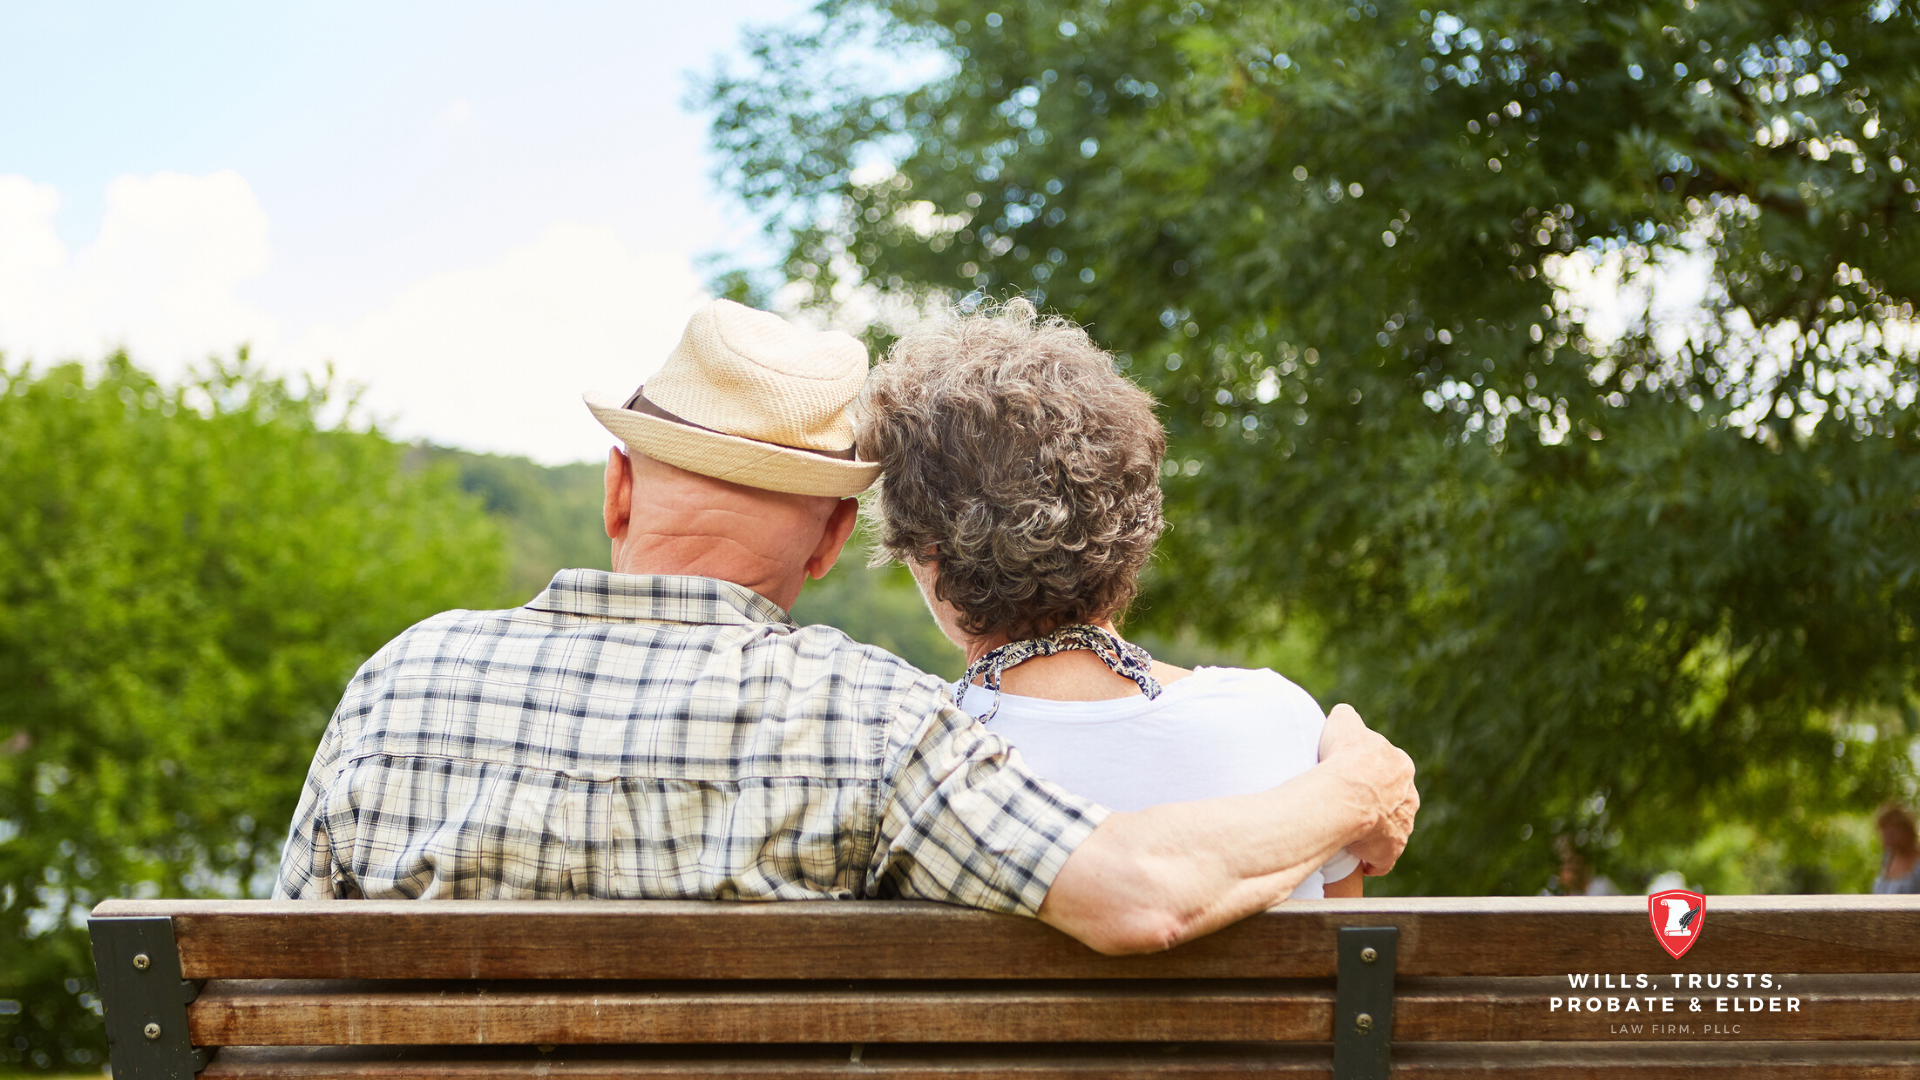 can-a-spouse-transfer-their-assets-to-qualify-for-medicaid